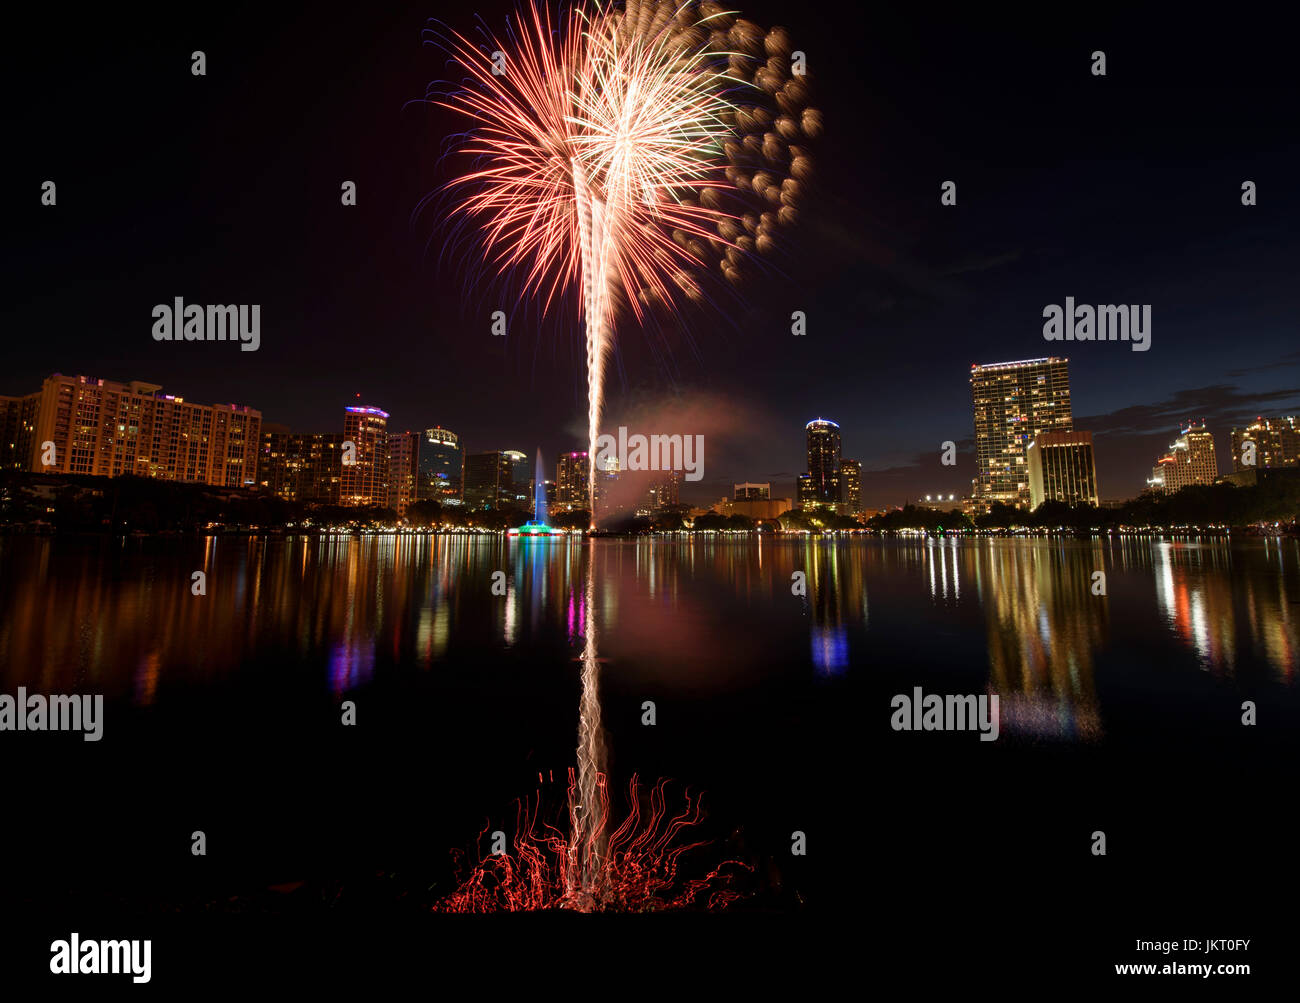 Fourth of July fireworks at Lake Eola Park in downtown Orlando, Florida. Stock Photo